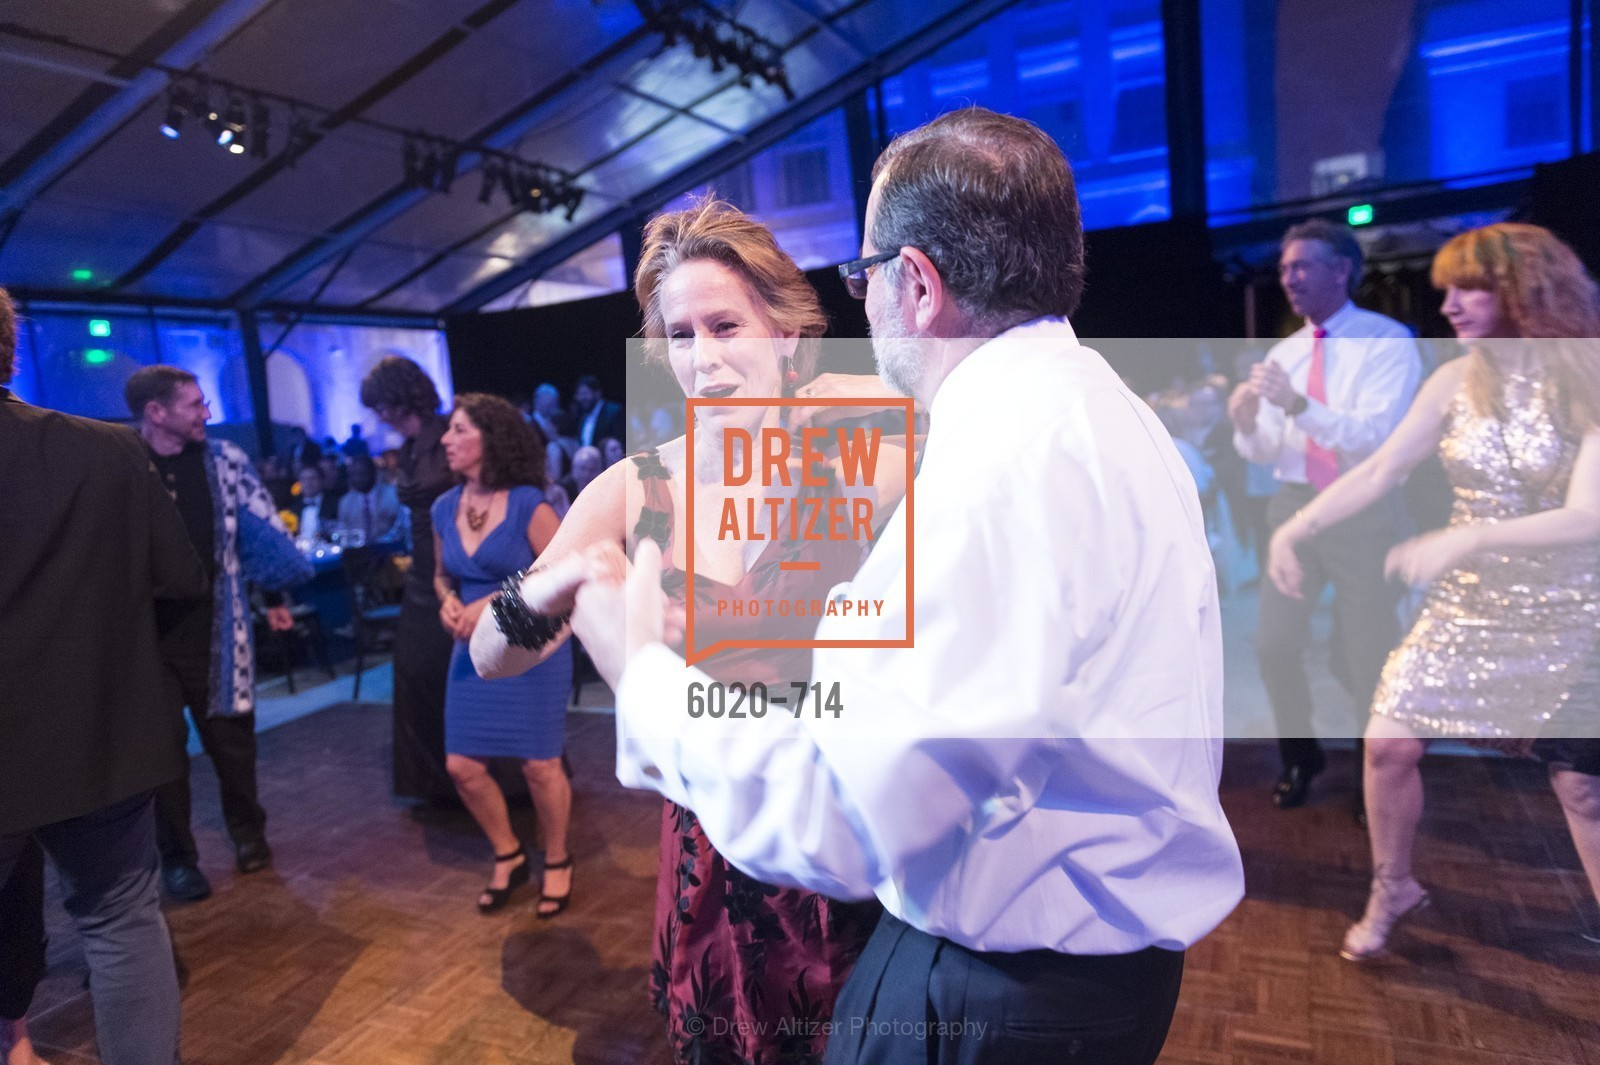 Dance Floor, SFJAZZ Gala 2015 Honors Joni Mitchell with Lifetime Achievement Award, US, May 8th, 2015,Drew Altizer, Drew Altizer Photography, full-service agency, private events, San Francisco photographer, photographer california